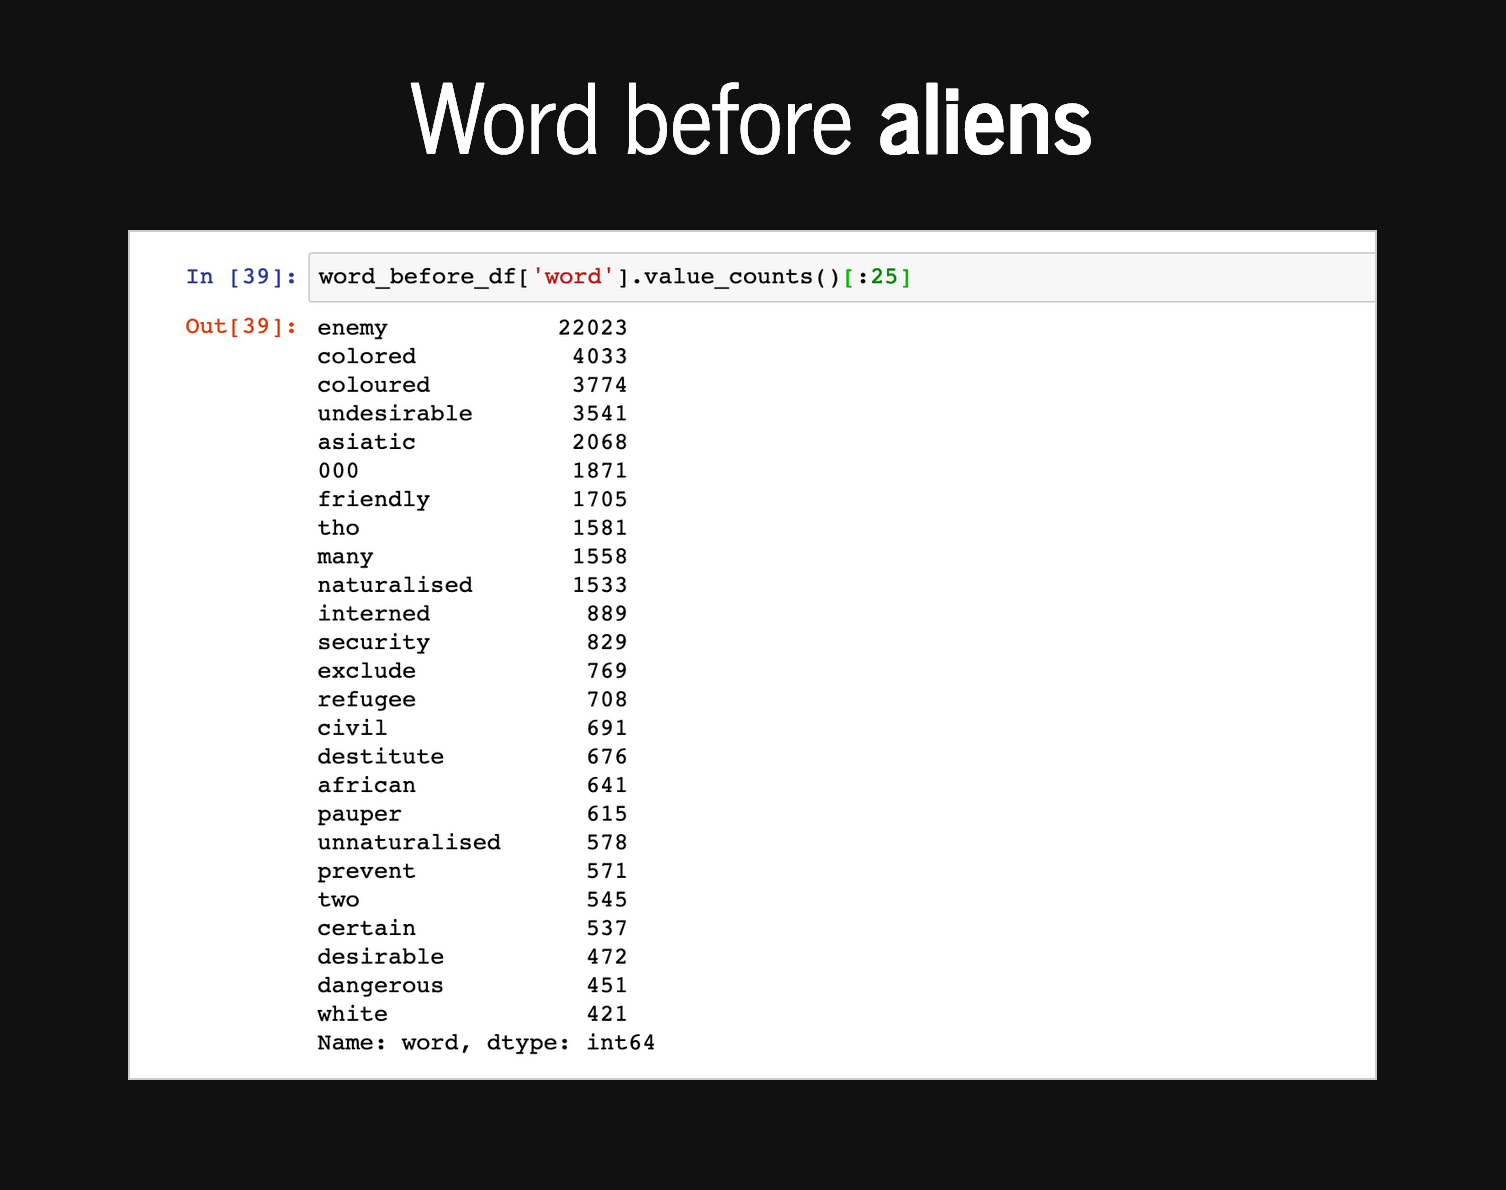 List of words appearing before aliens by frequency